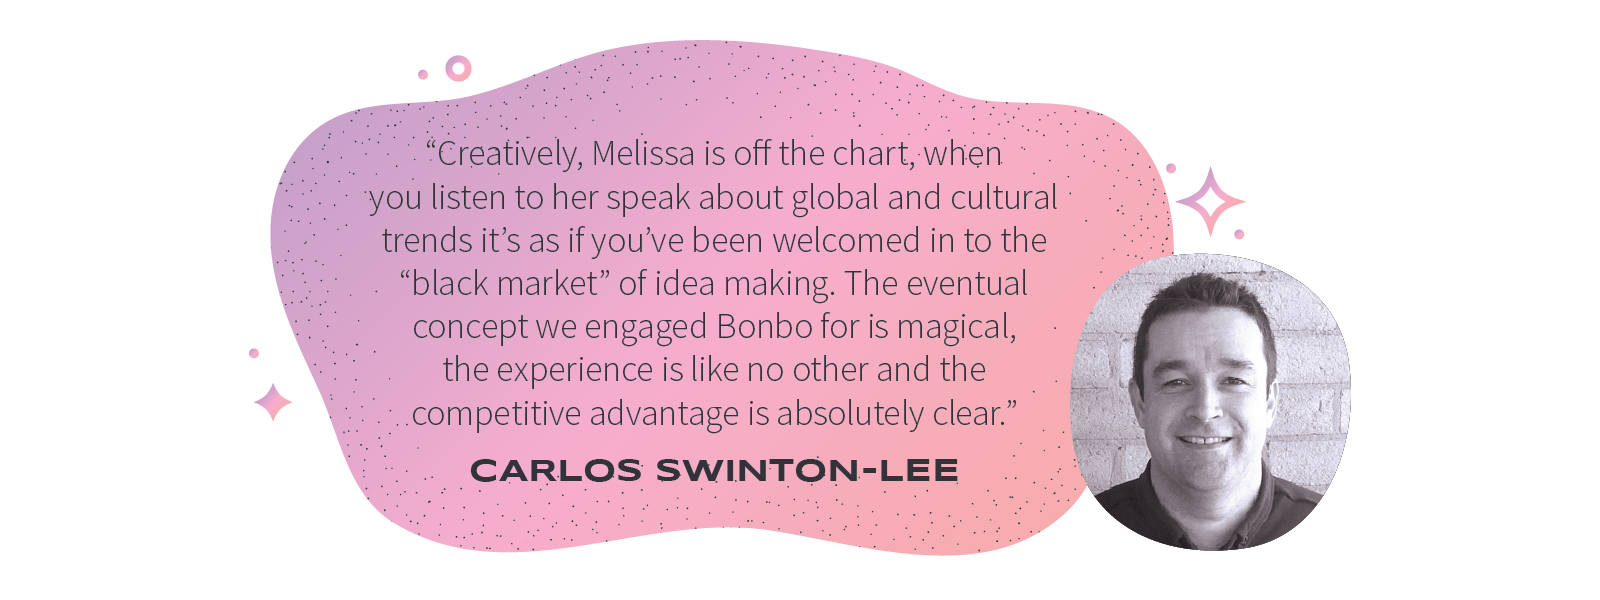 """Creatively, Melissa is off the chart, when you listen to her speak about global and culturaltrends it's as if you've been welcomed in to the ""black market"" of idea making. The eventual concept we engaged Bonbo for is magical, the experience is like no other and the competitive advantage is absolutely clear."" – Carlos Swinton-Lee"